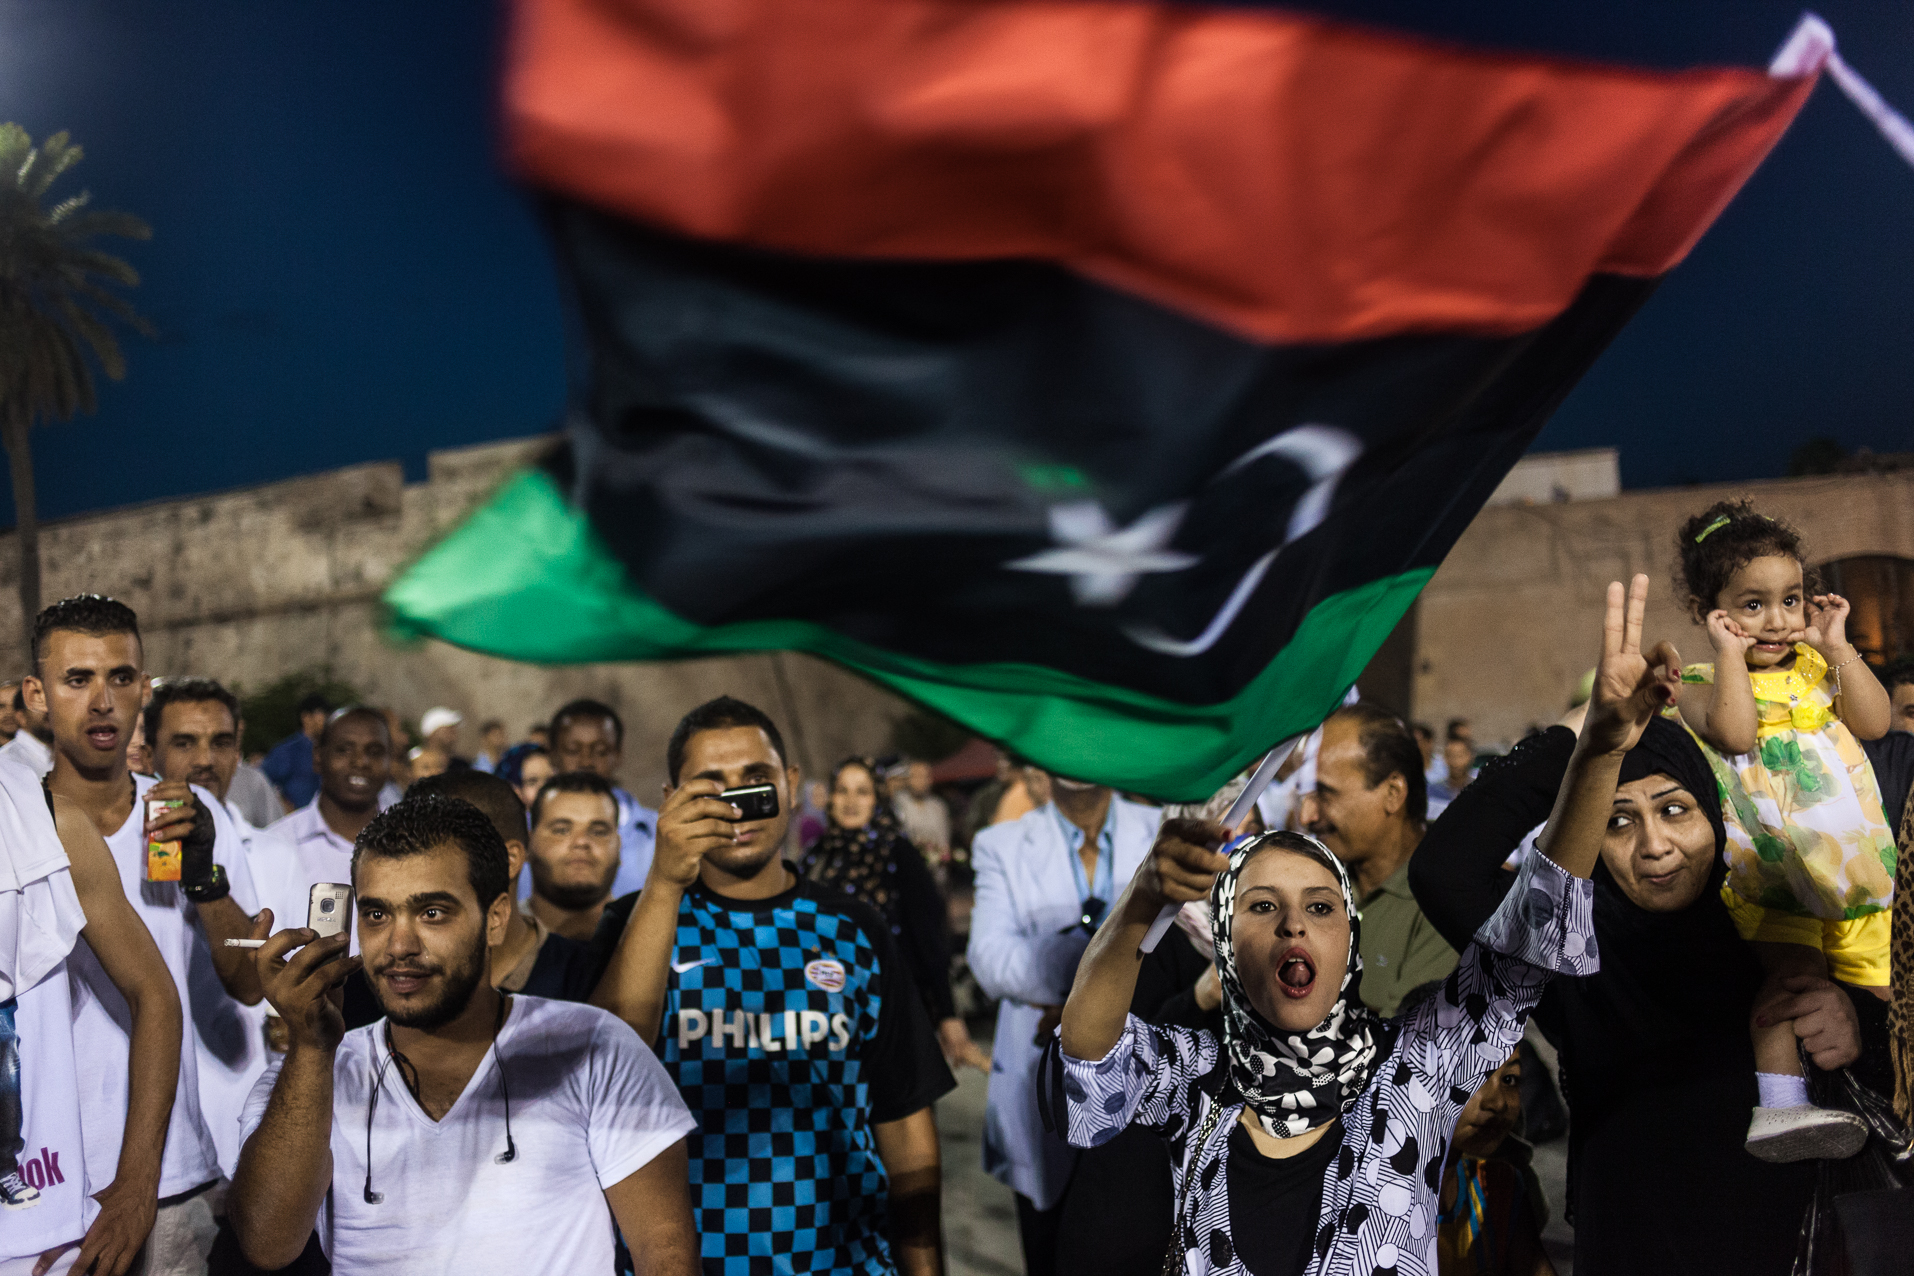 Tripoli, 5 Juillet 2012. Sur la place verte de Tripoli, deux jours avant les elections legislatives libyennes.  Tripoli, July 5, 2012. The Green Square in Tripoli, two days before the parliamentary elections in Libya.